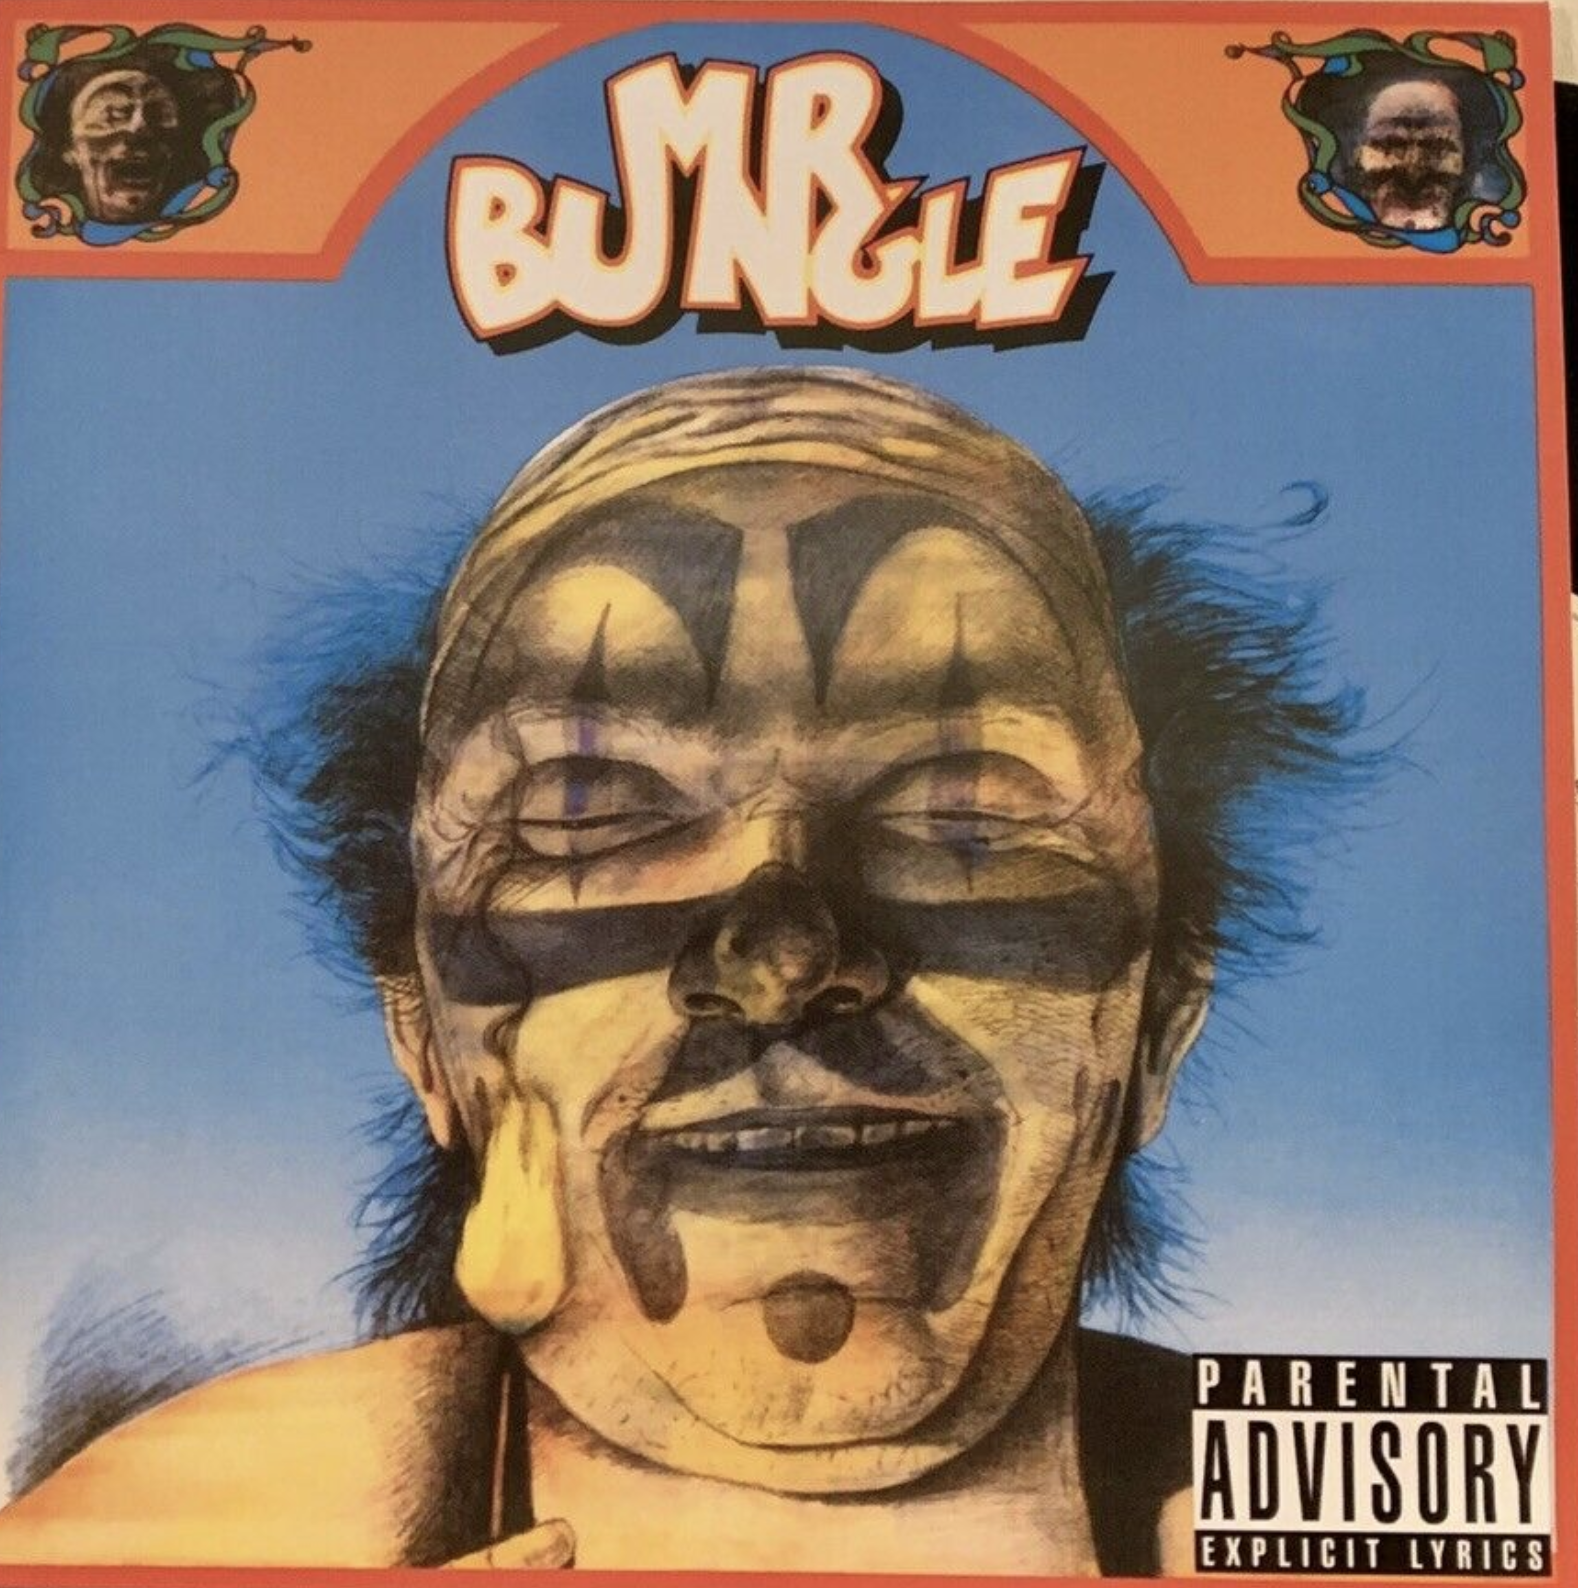 MR BUNGLE WITH Mike Patton